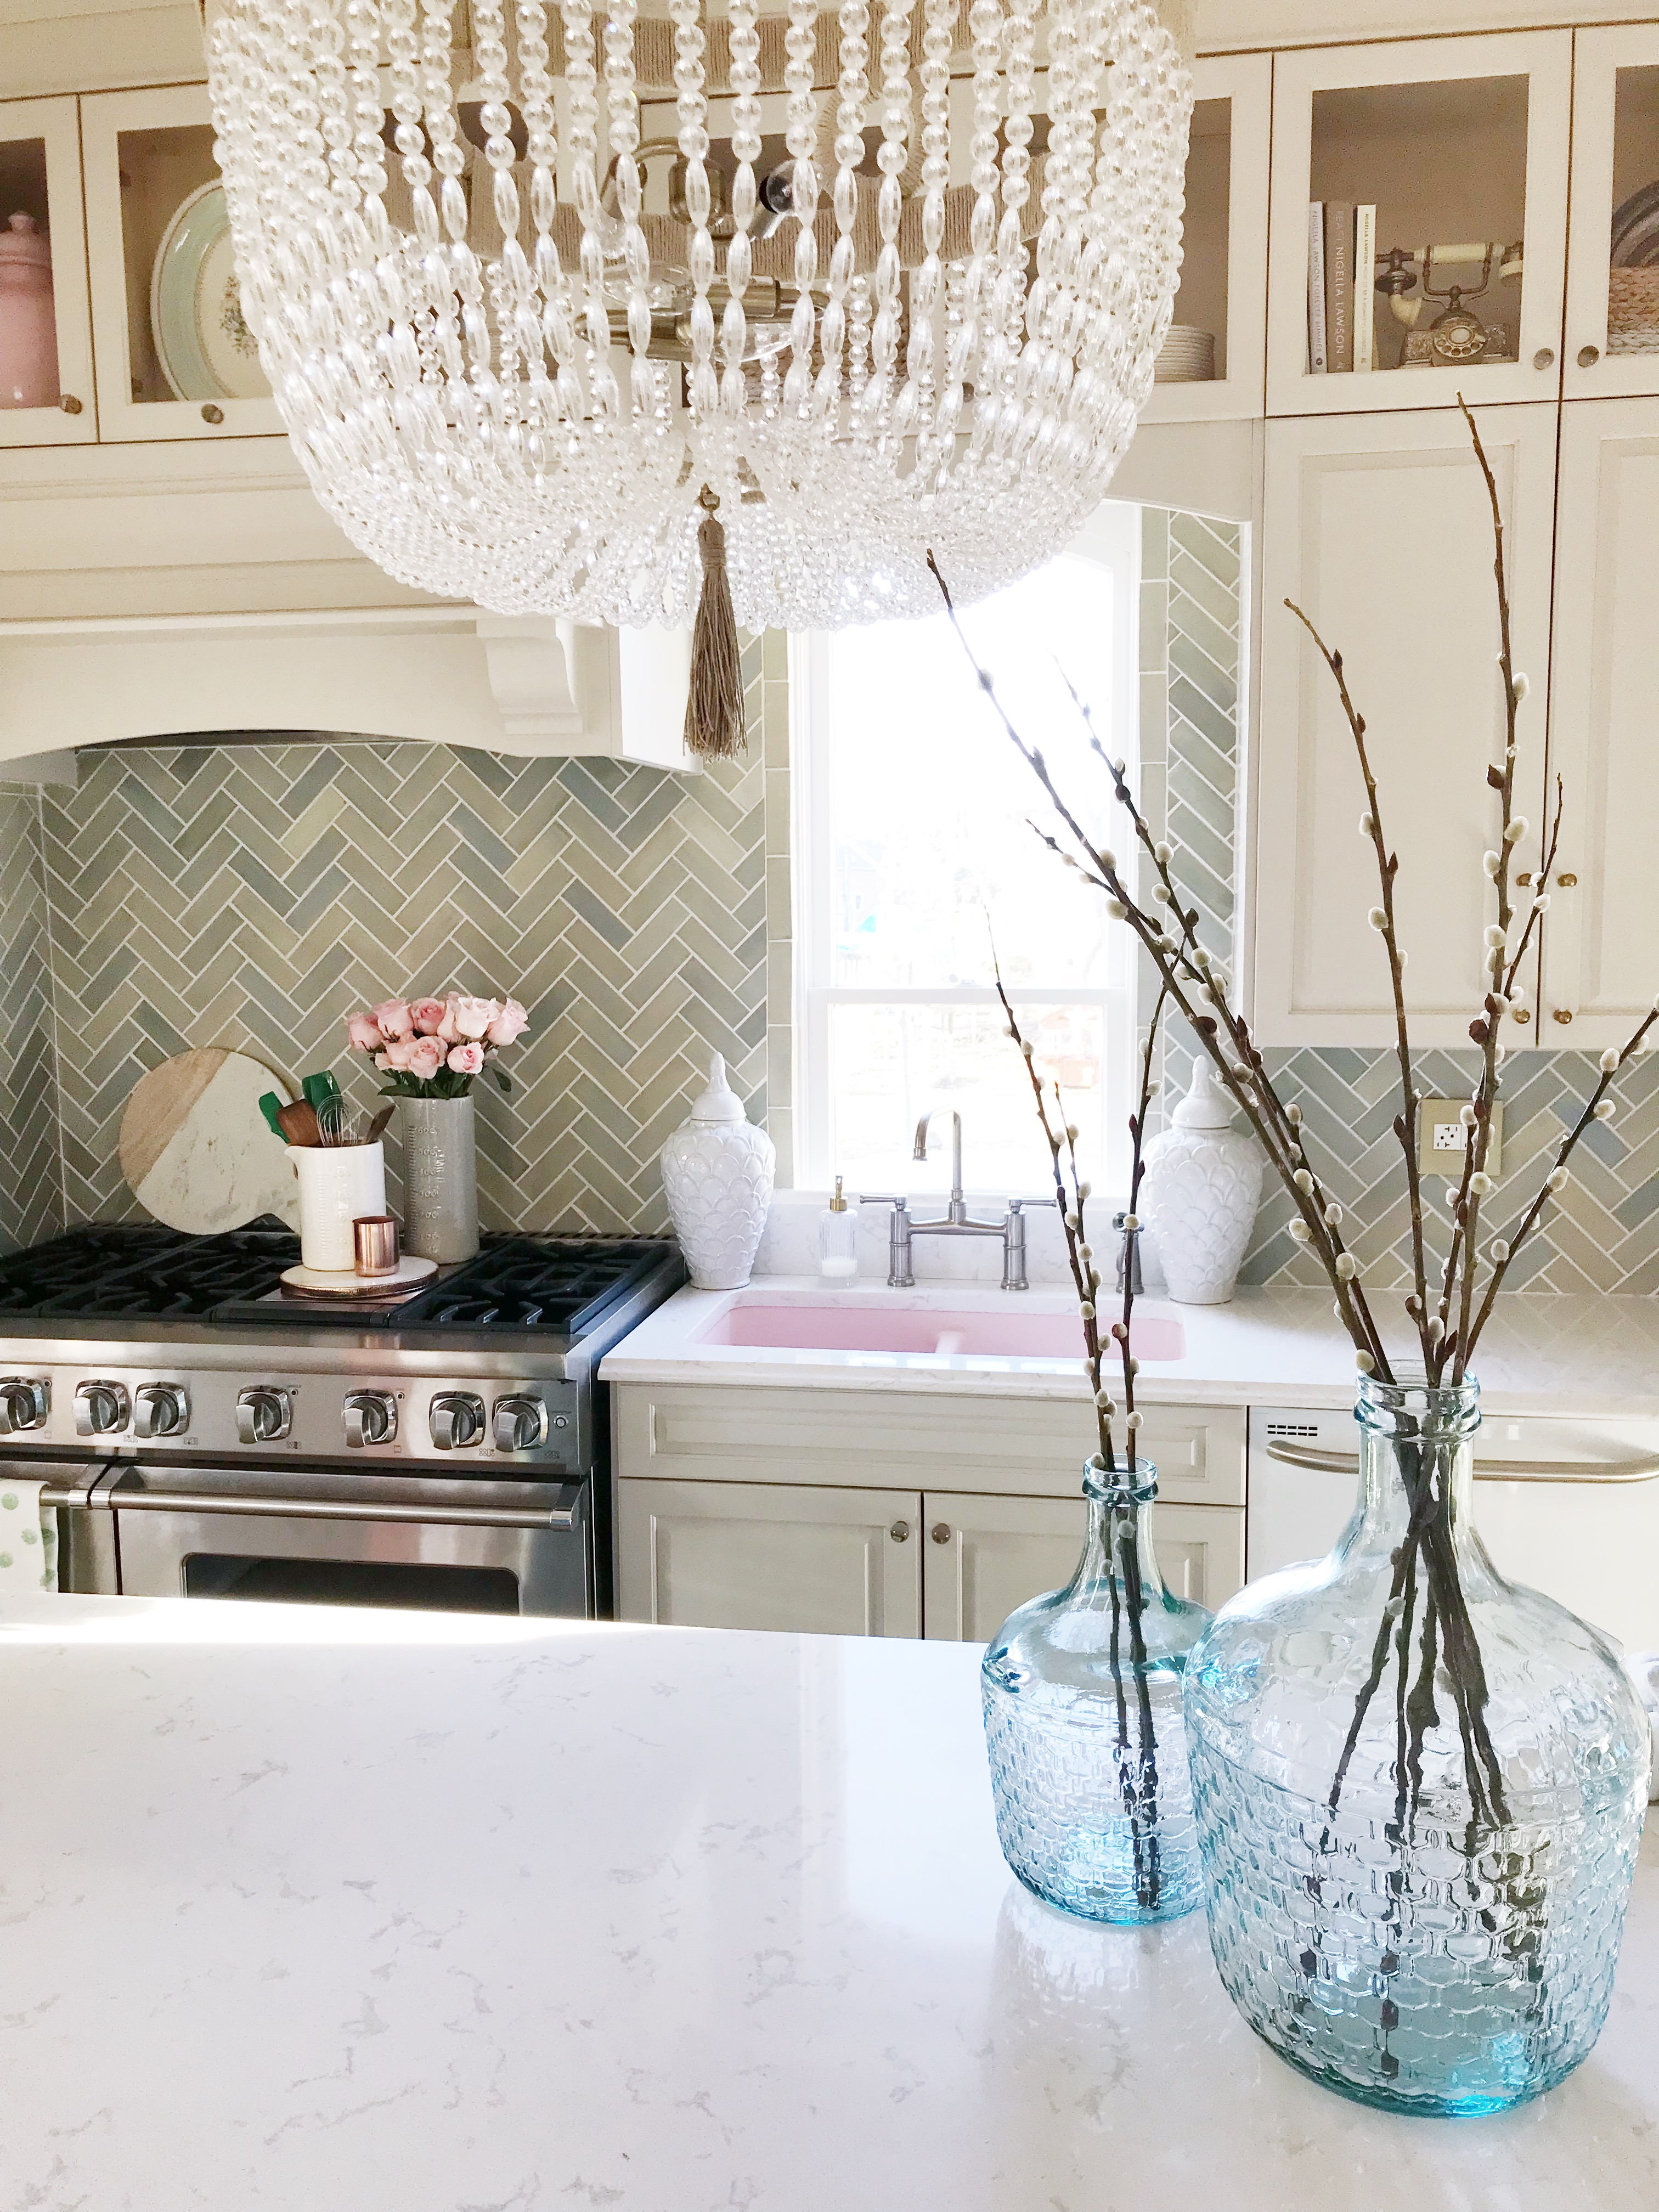 How To Add Decor Accessories Your Kitchen The Leslie Style